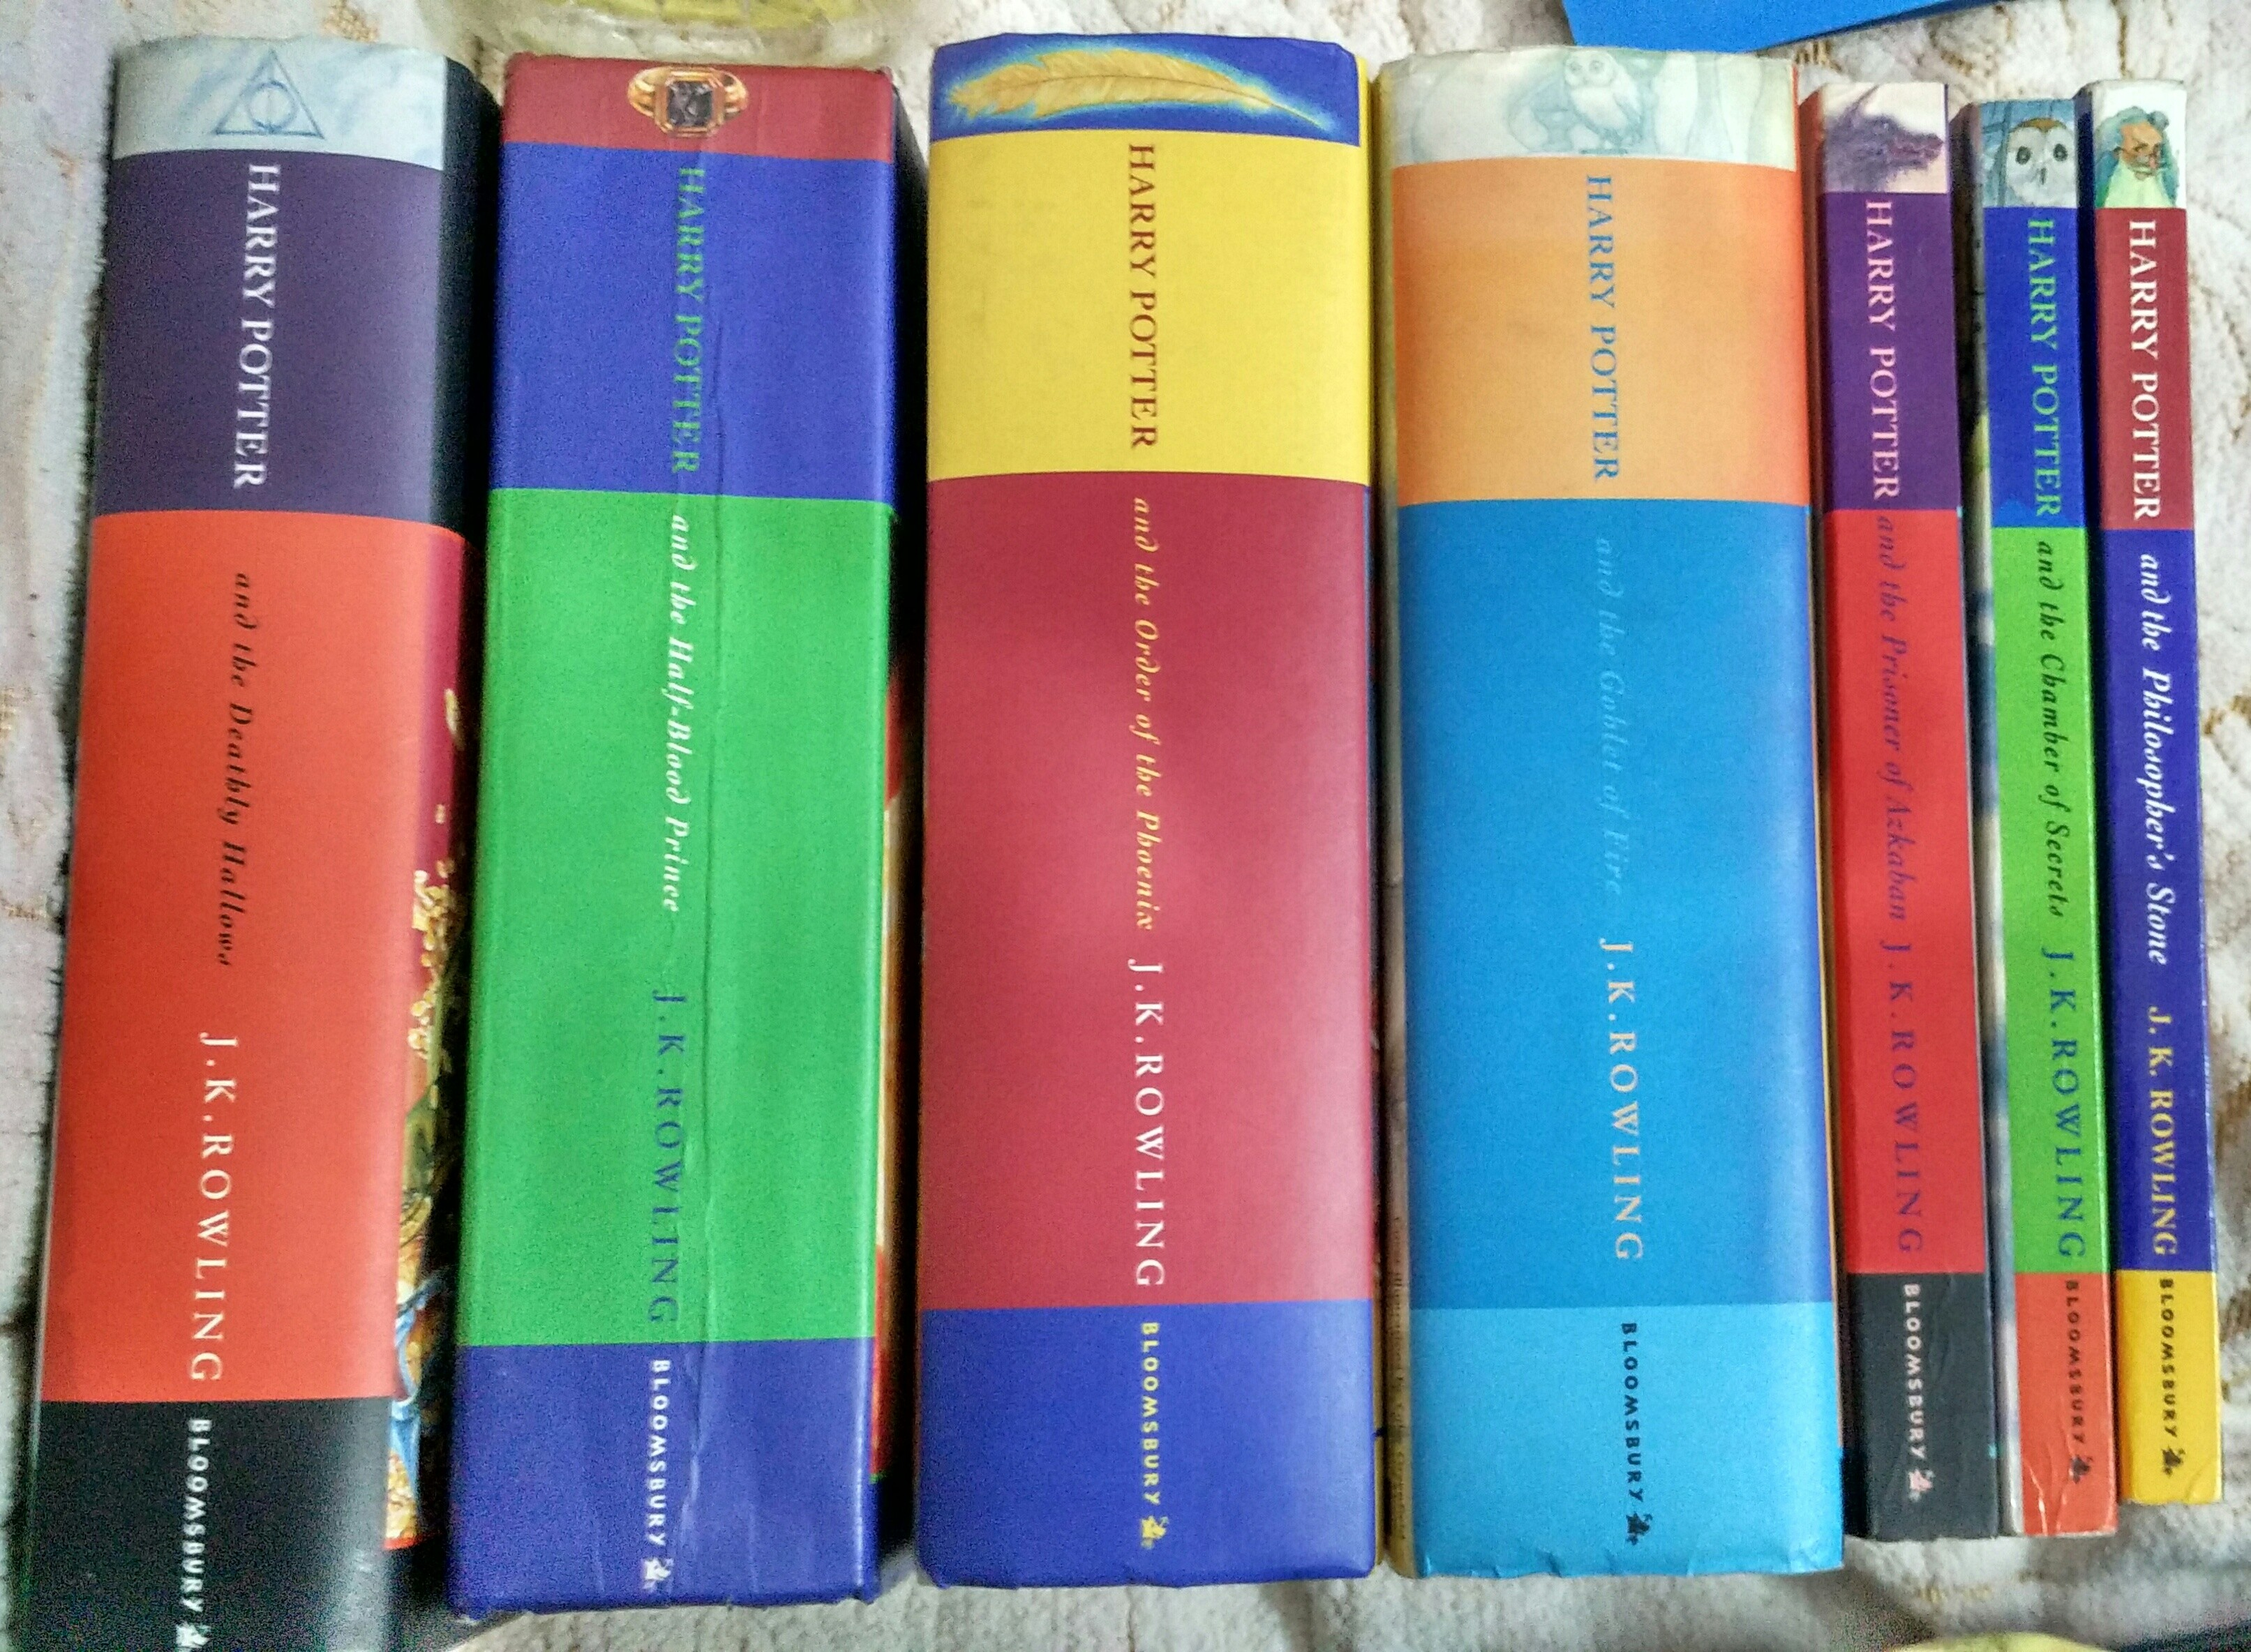 After 4 years, ive finally collecte all the 7 Harry Potter books in